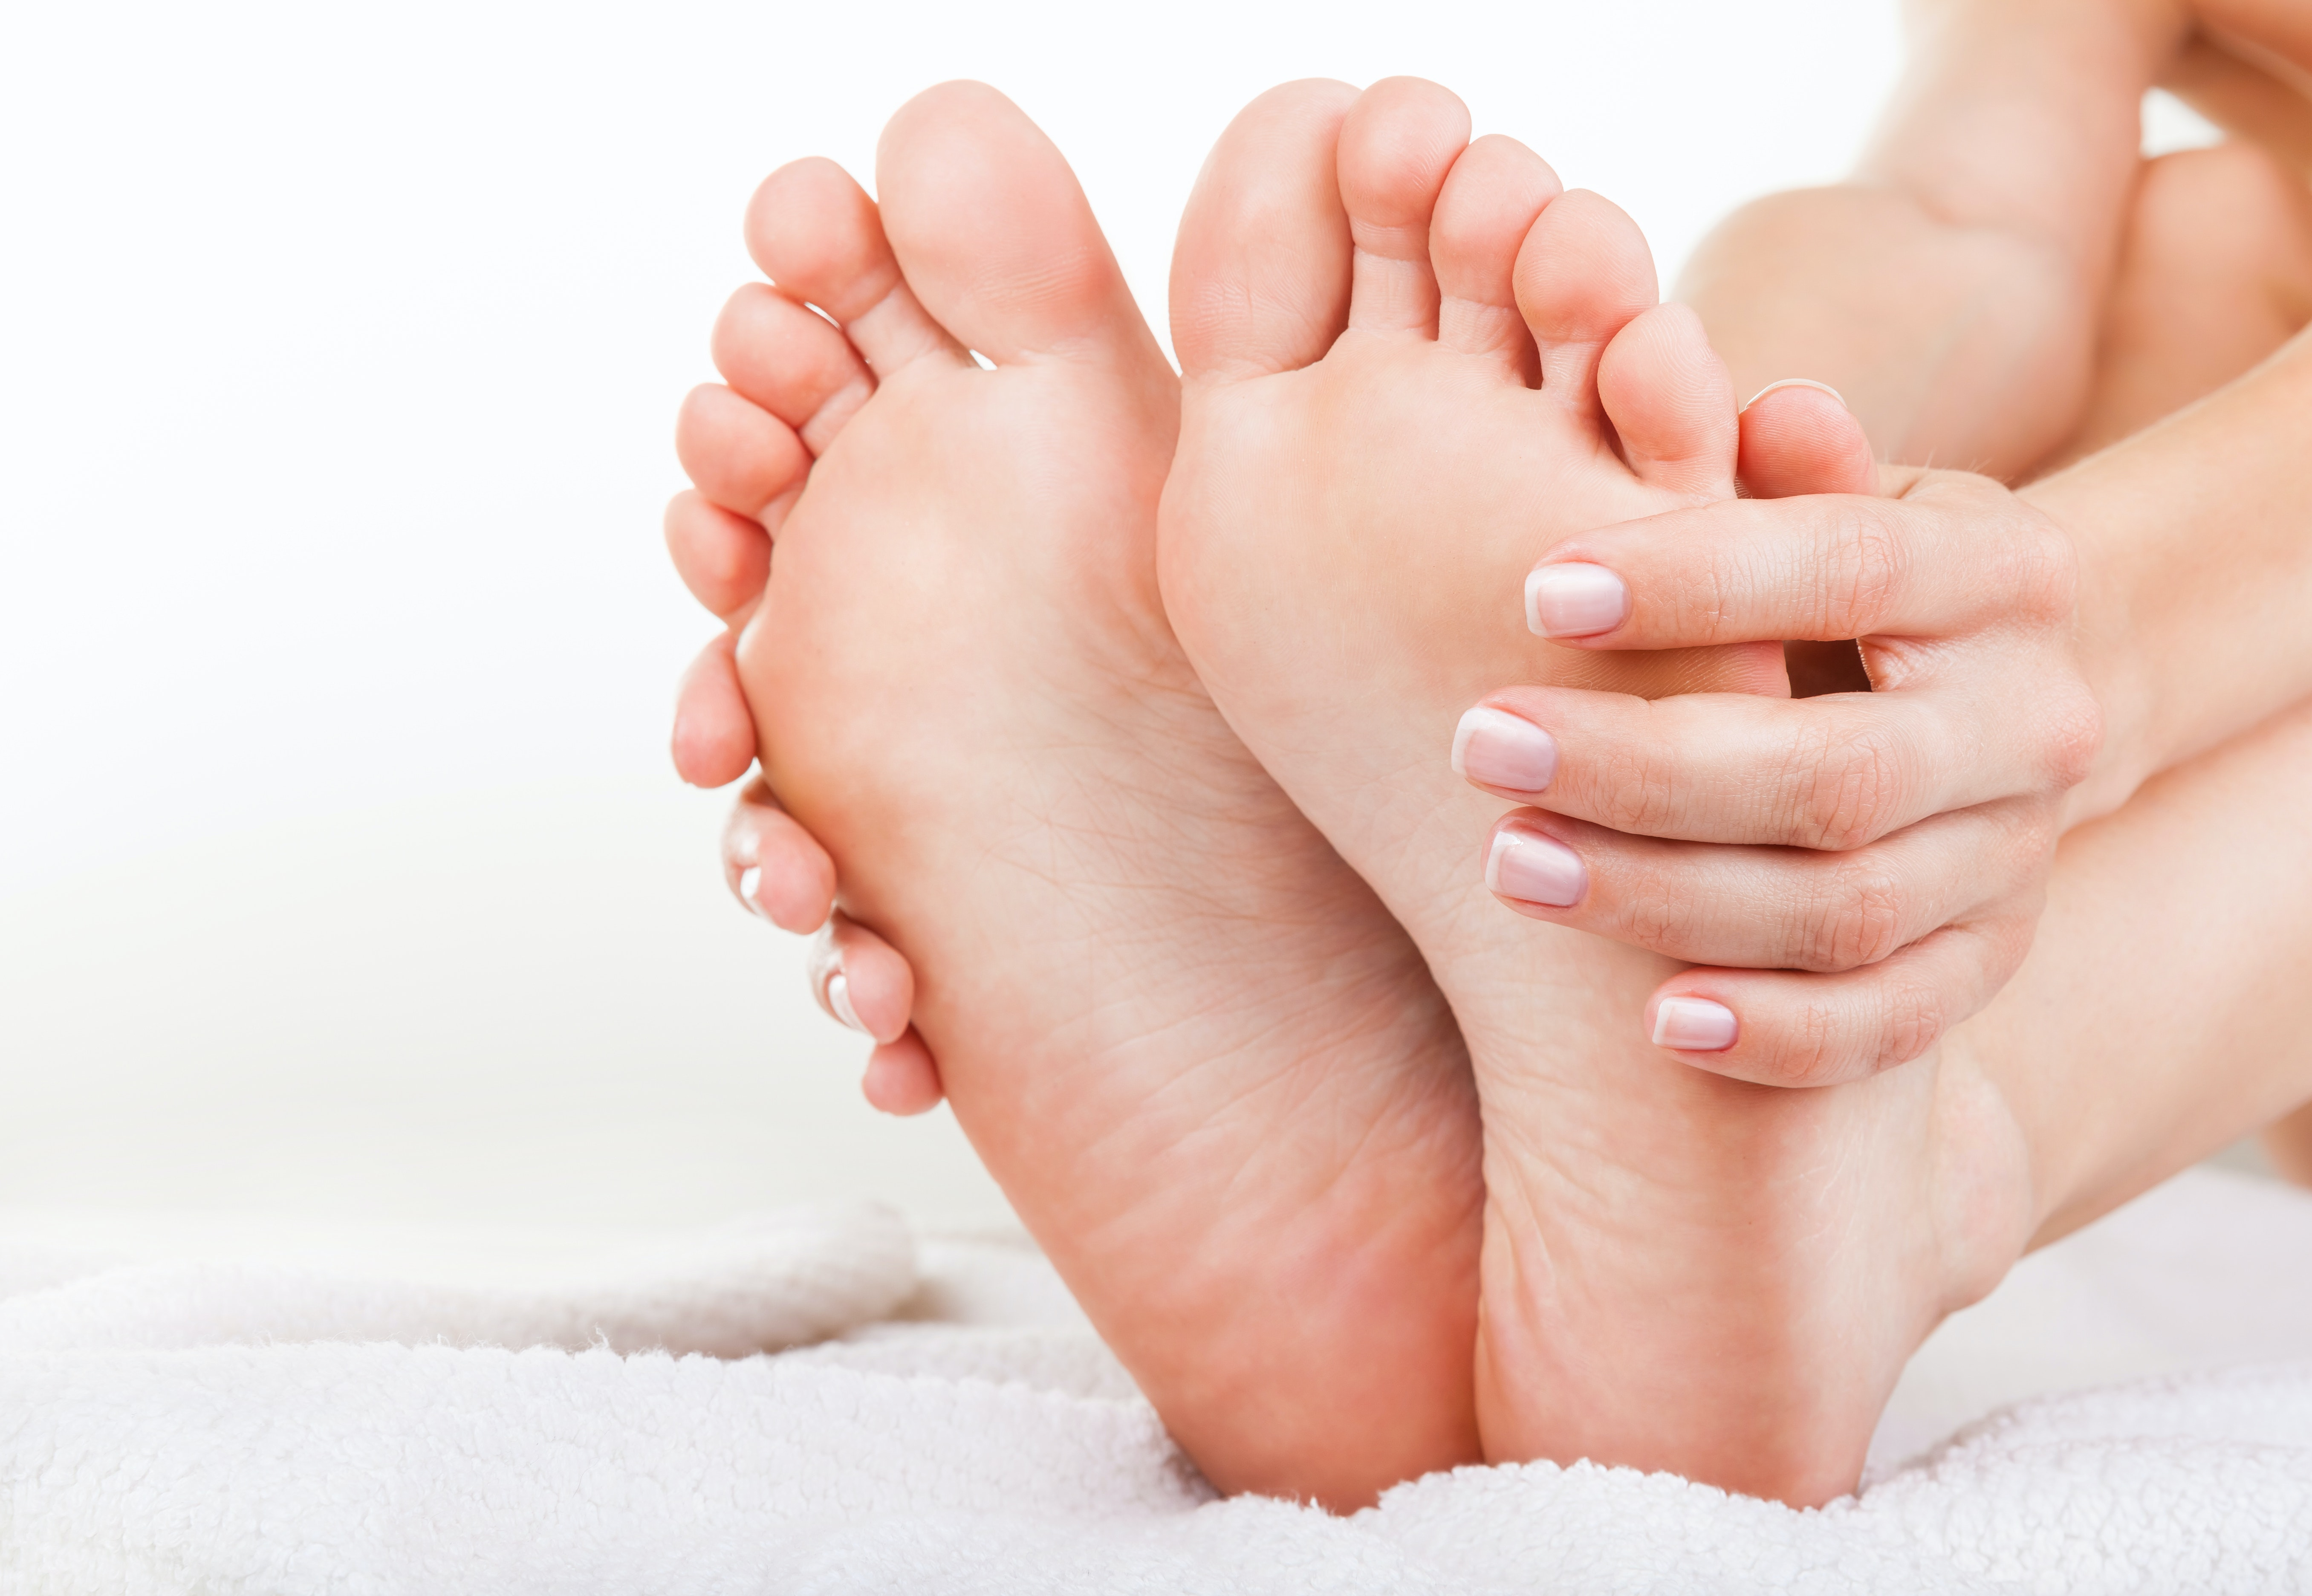 An image depicting a person suffering from toe skin changes symptoms